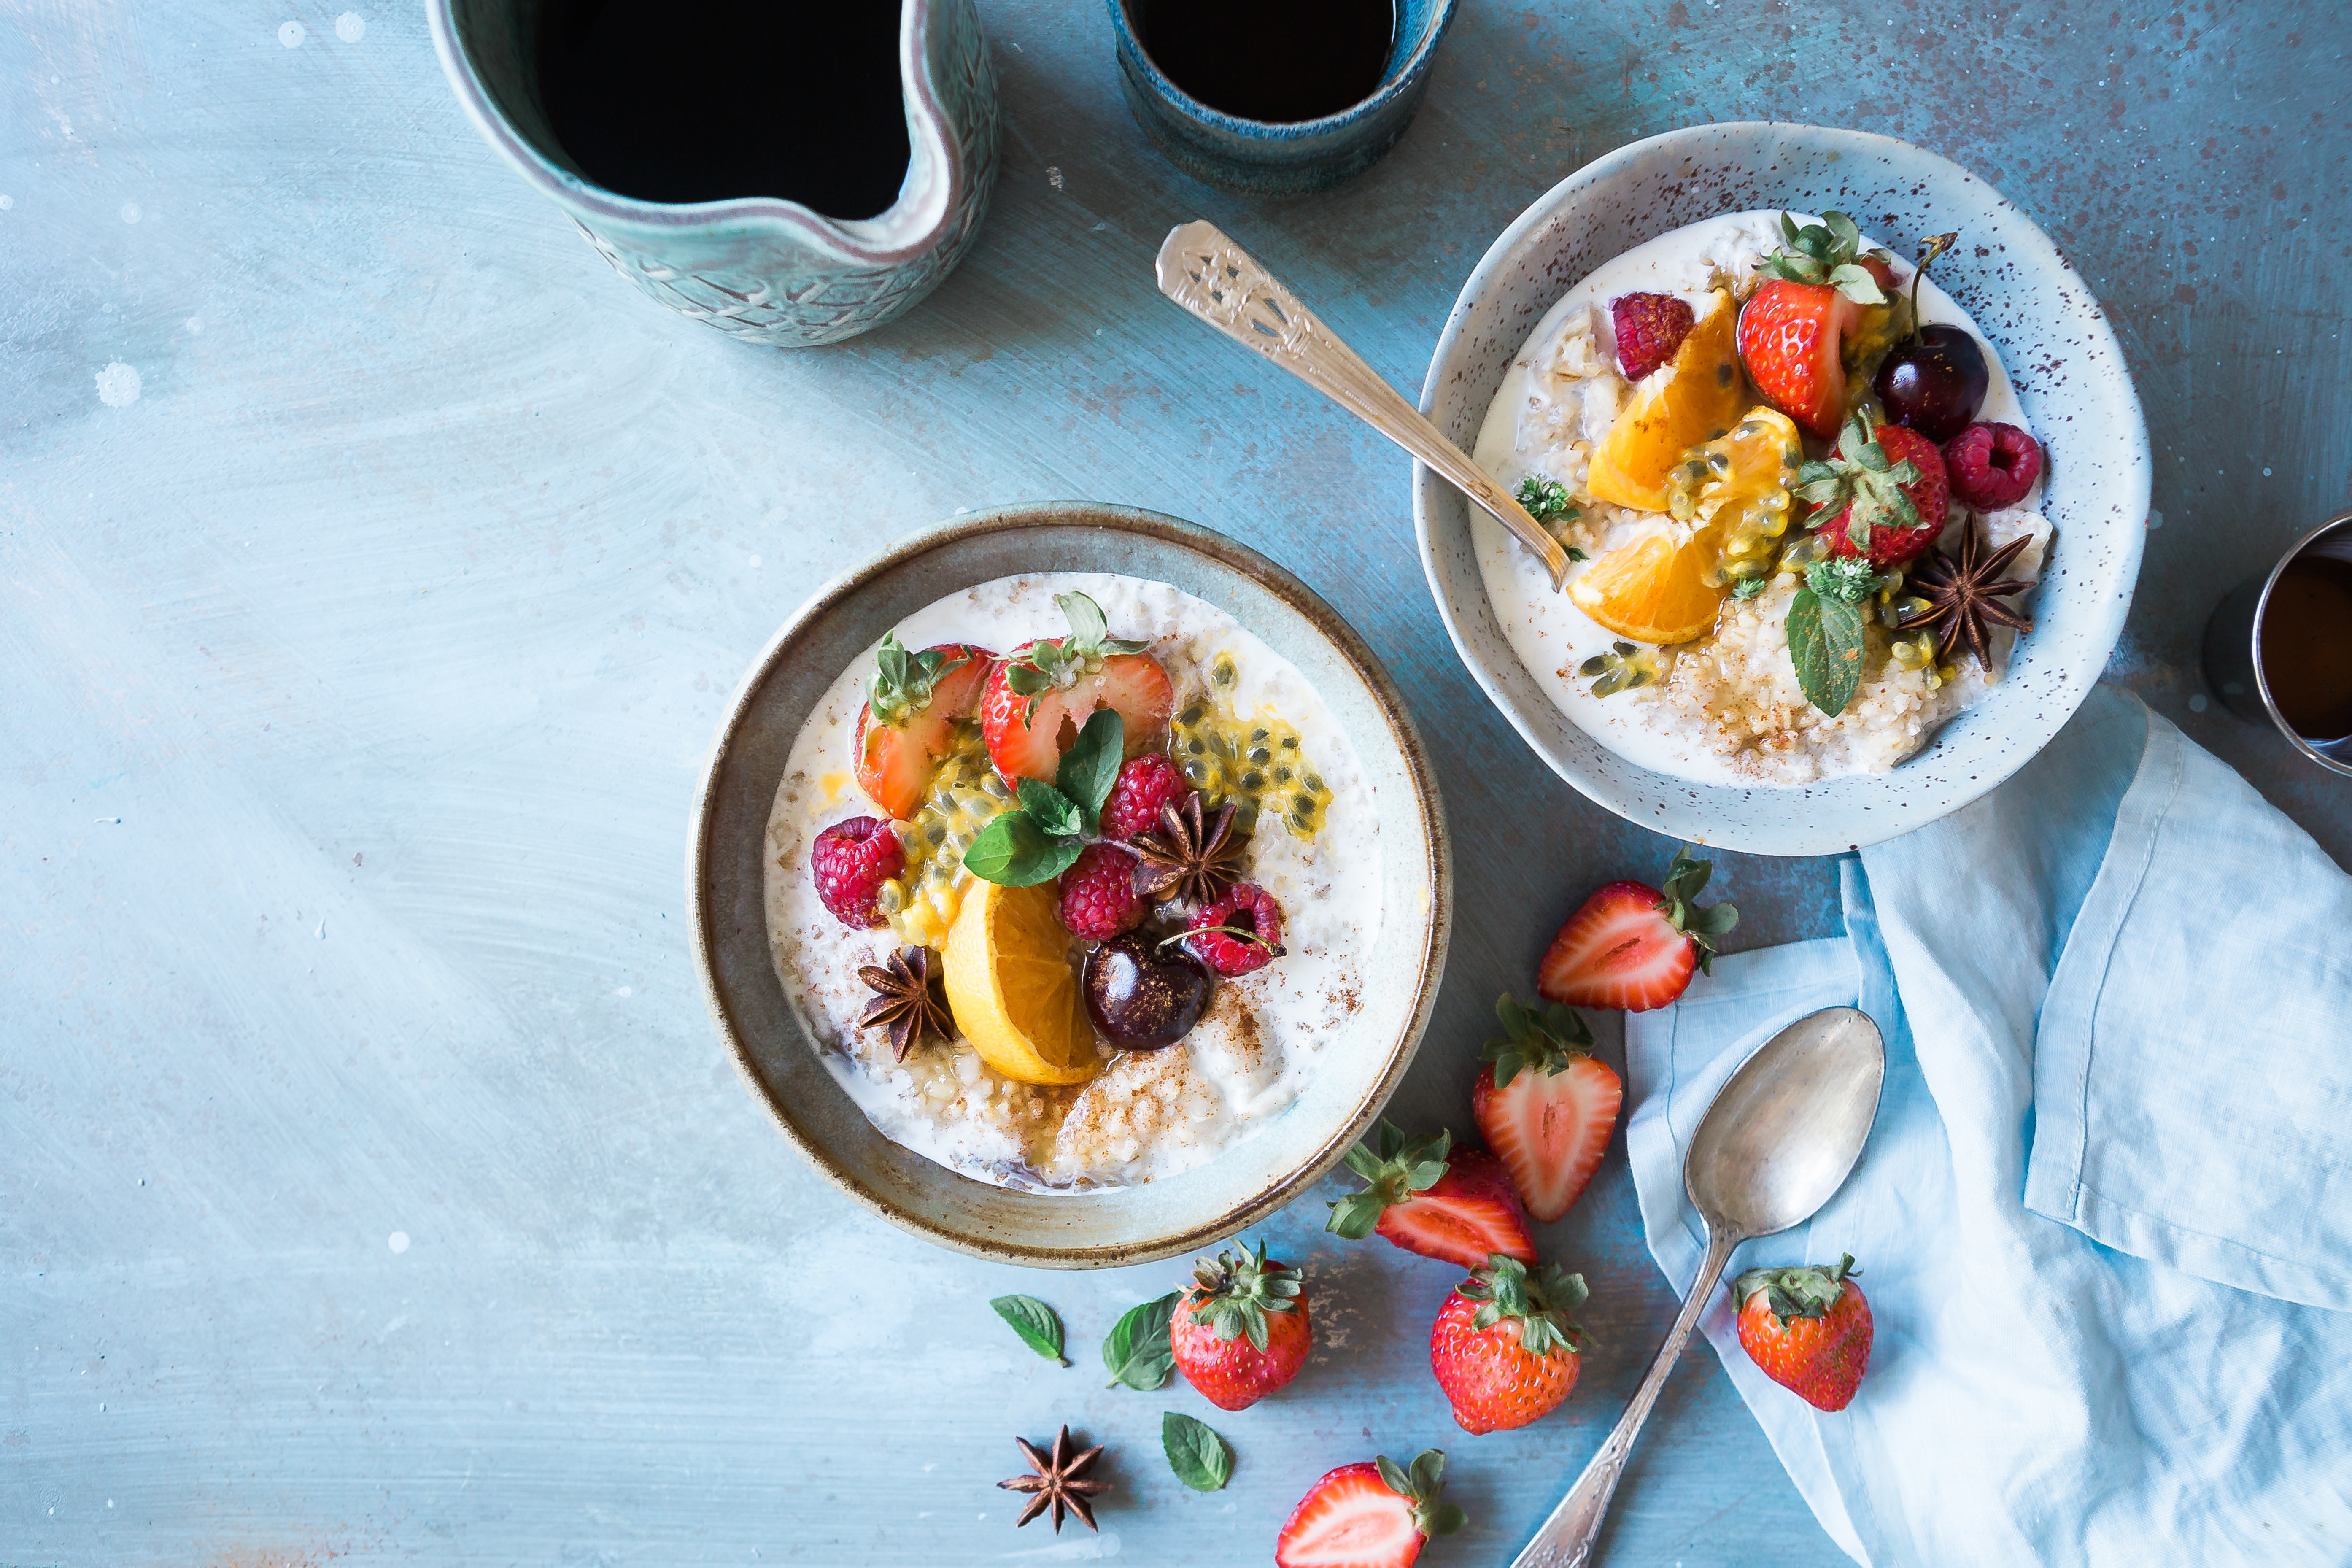 two bowls of oatmeal with fruits